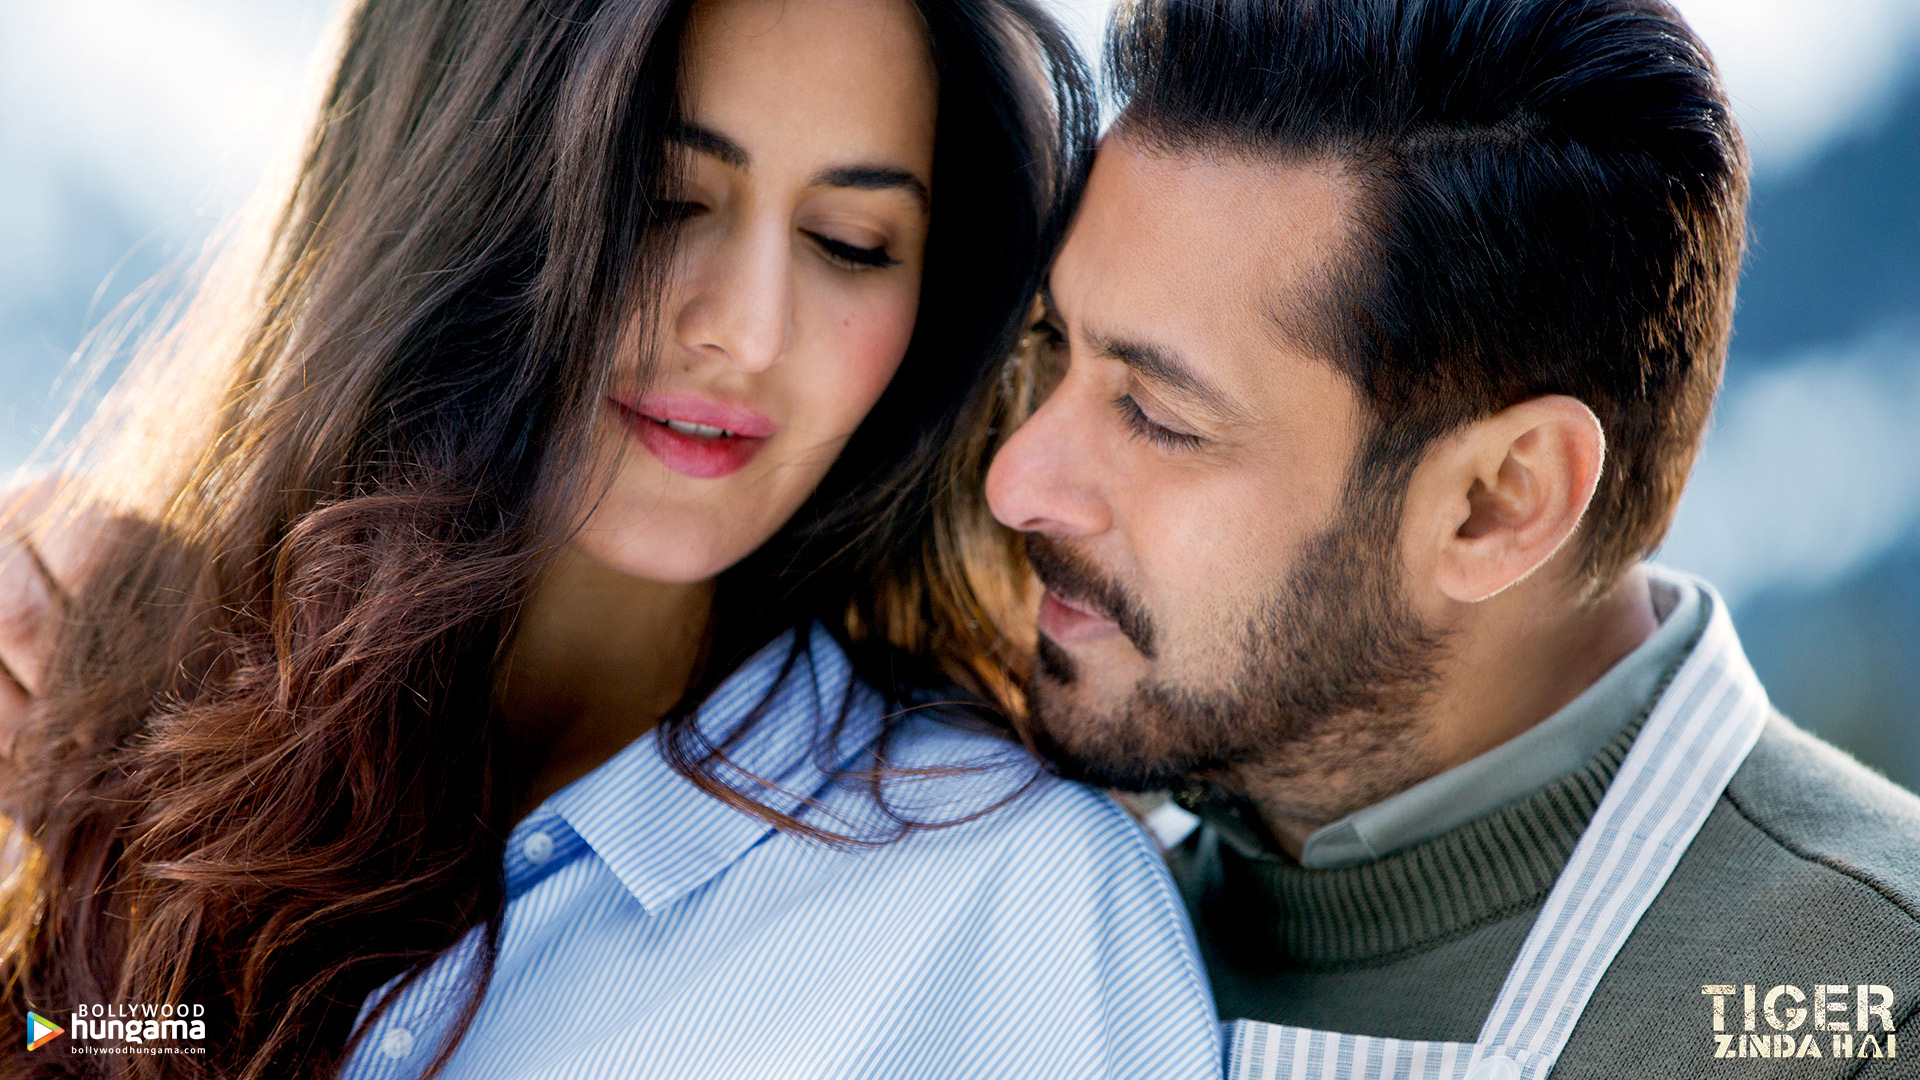 Tiger Zinda Hai 2017 Wallpapers Tiger Zinda Hai 66 Bollywood Hungama